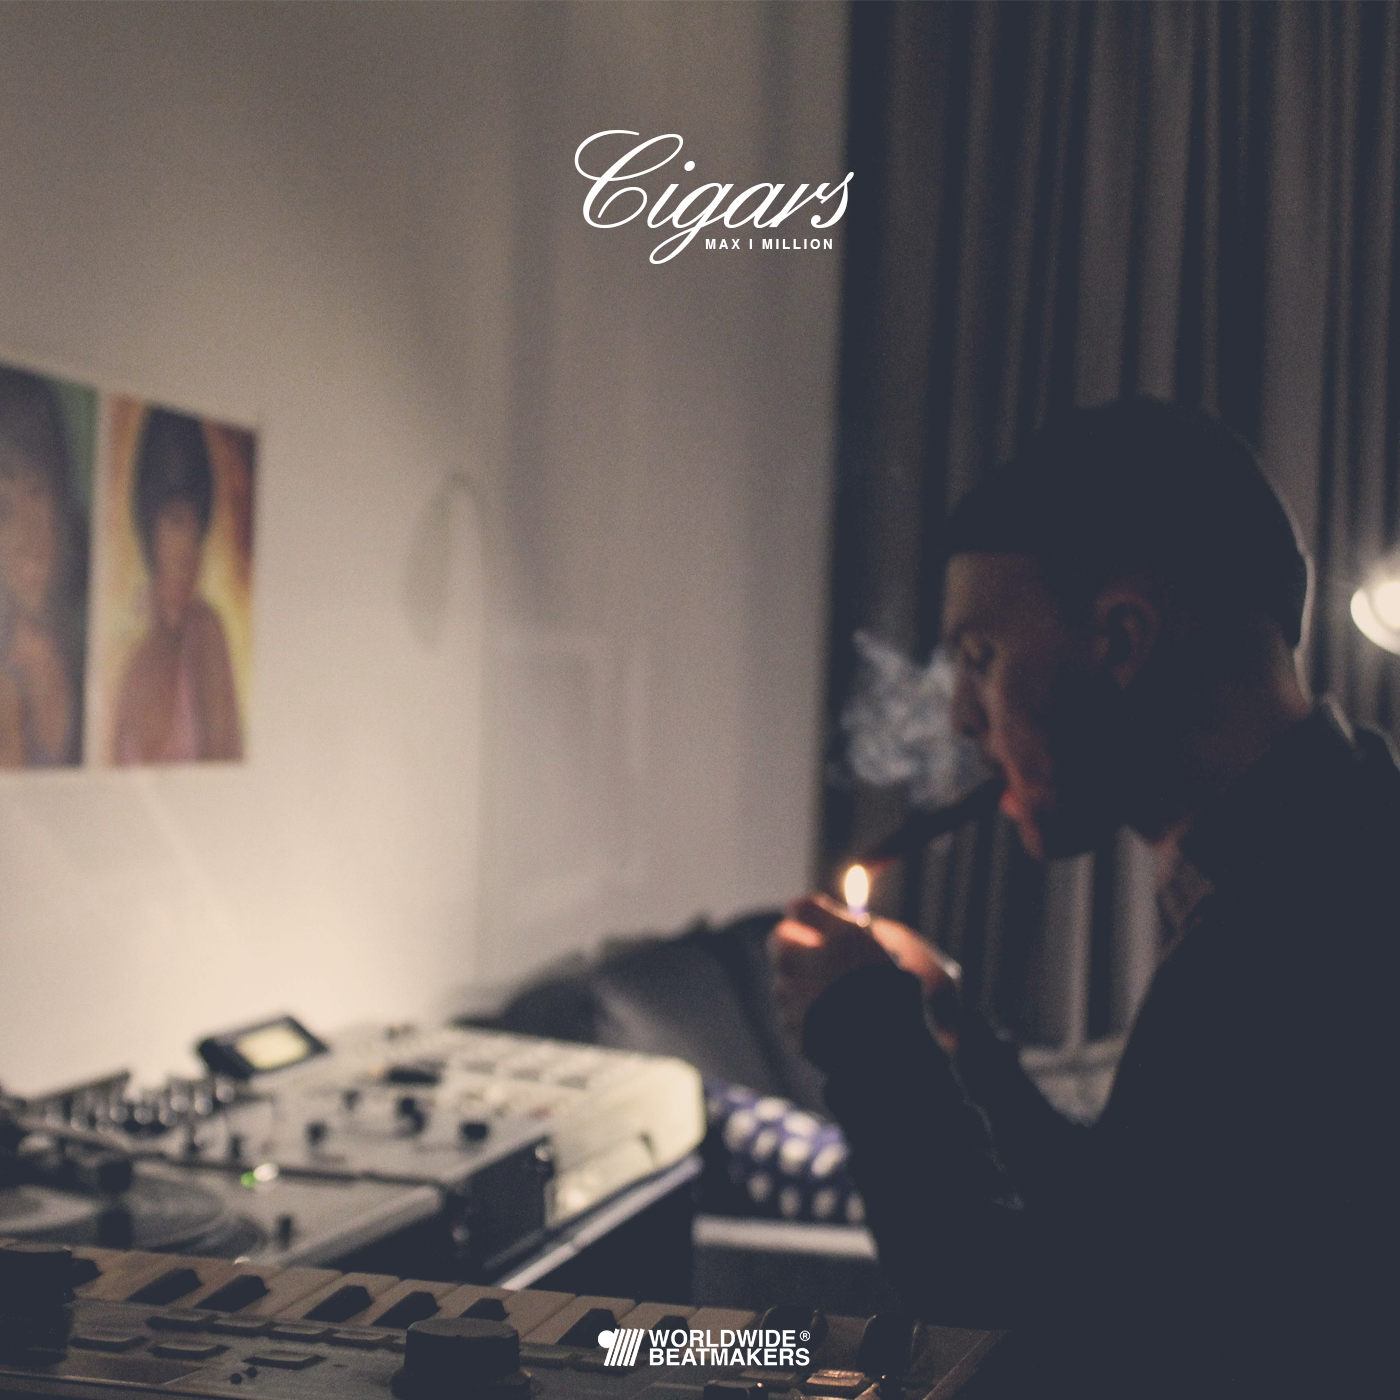 Max I Million - Cigars EP